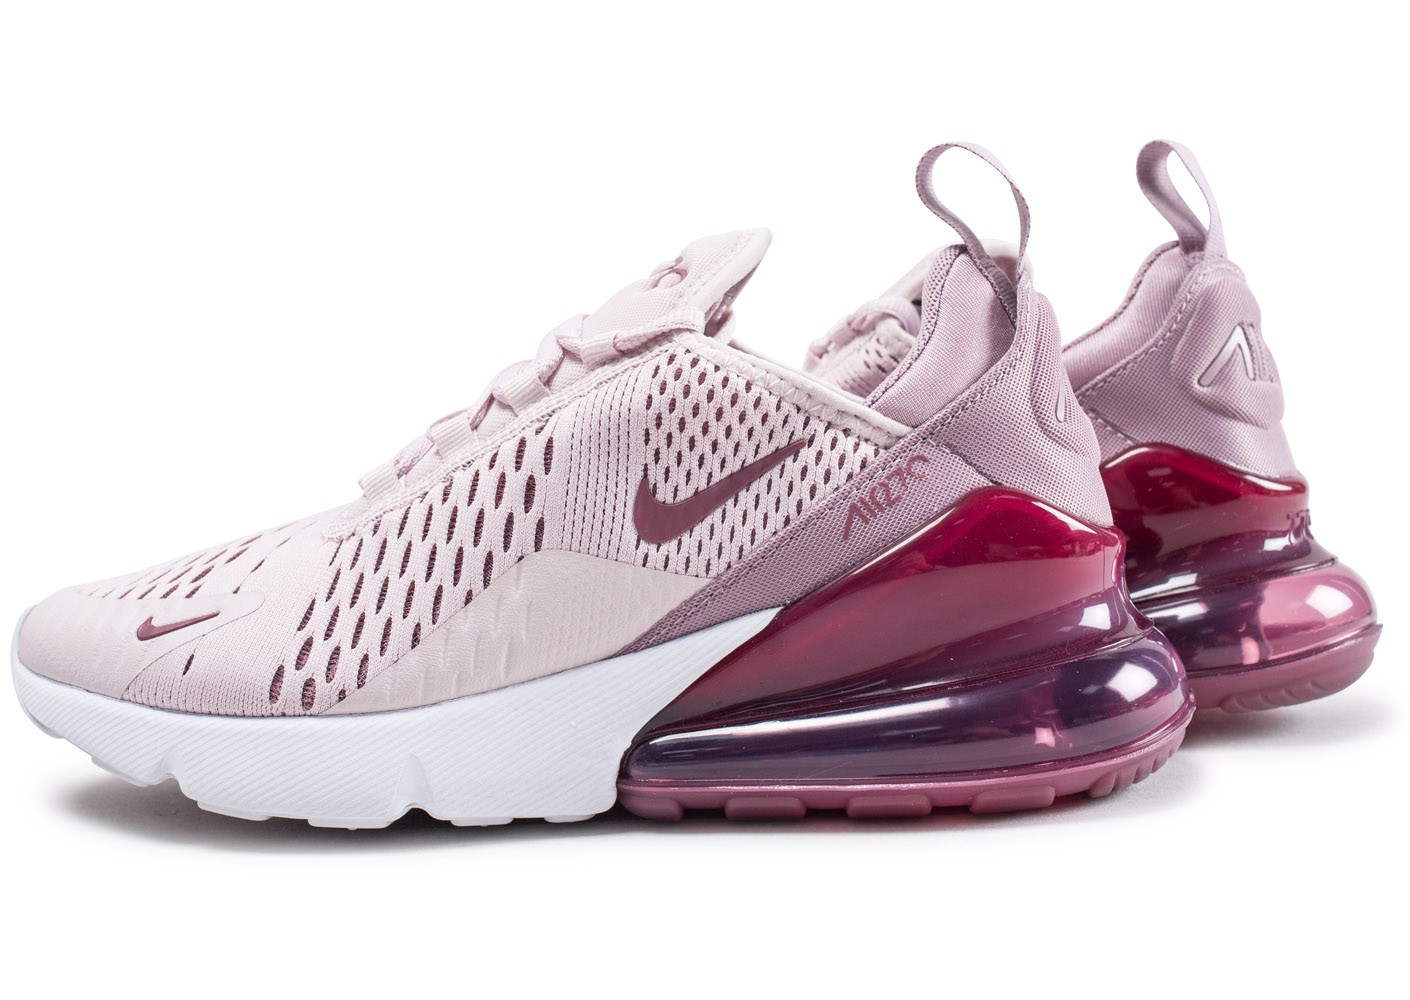 Nike Air Max 270 rose - Chaussures Baskets femme - Chausport